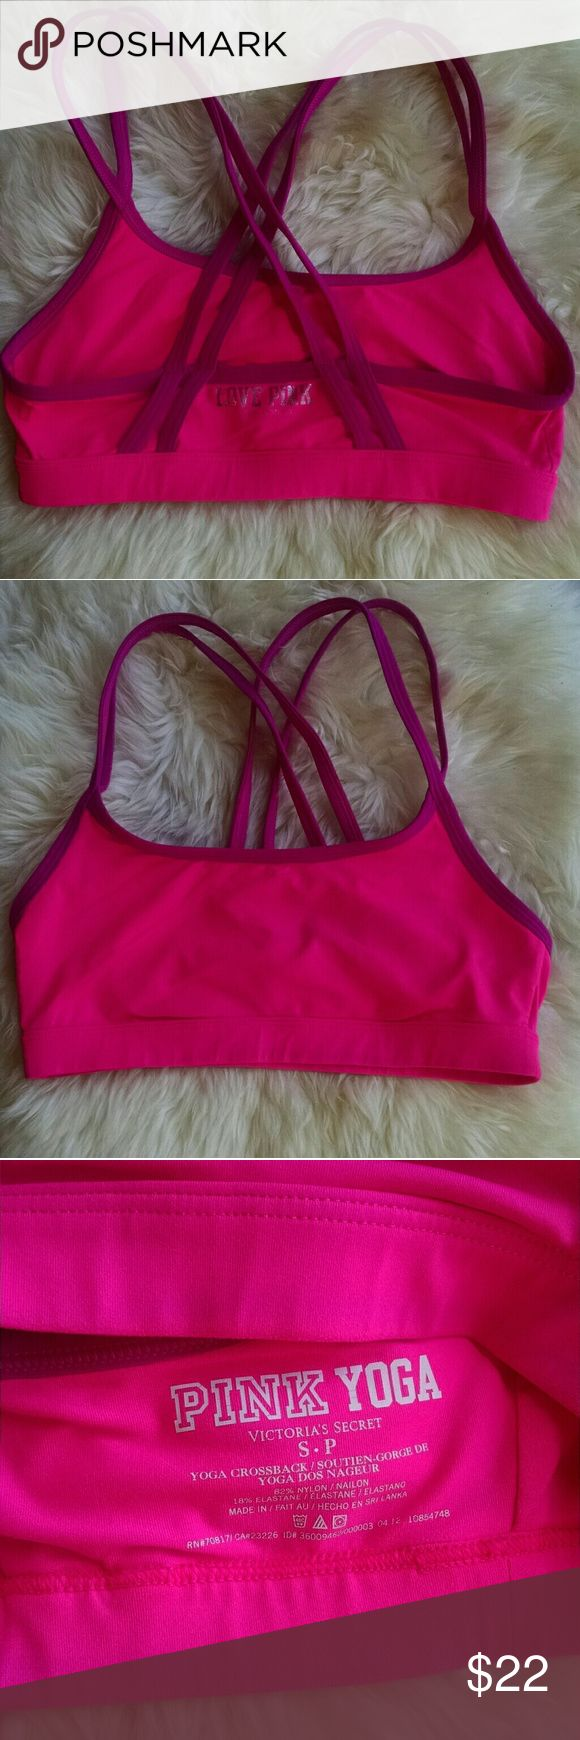 VS PINK Yoga Sports Bra with Cross Straps in Back Super cute and comfy. Pink with a darker pink/magenta color straps. PINK Victoria's Secret Intimates & Sleepwear Bras